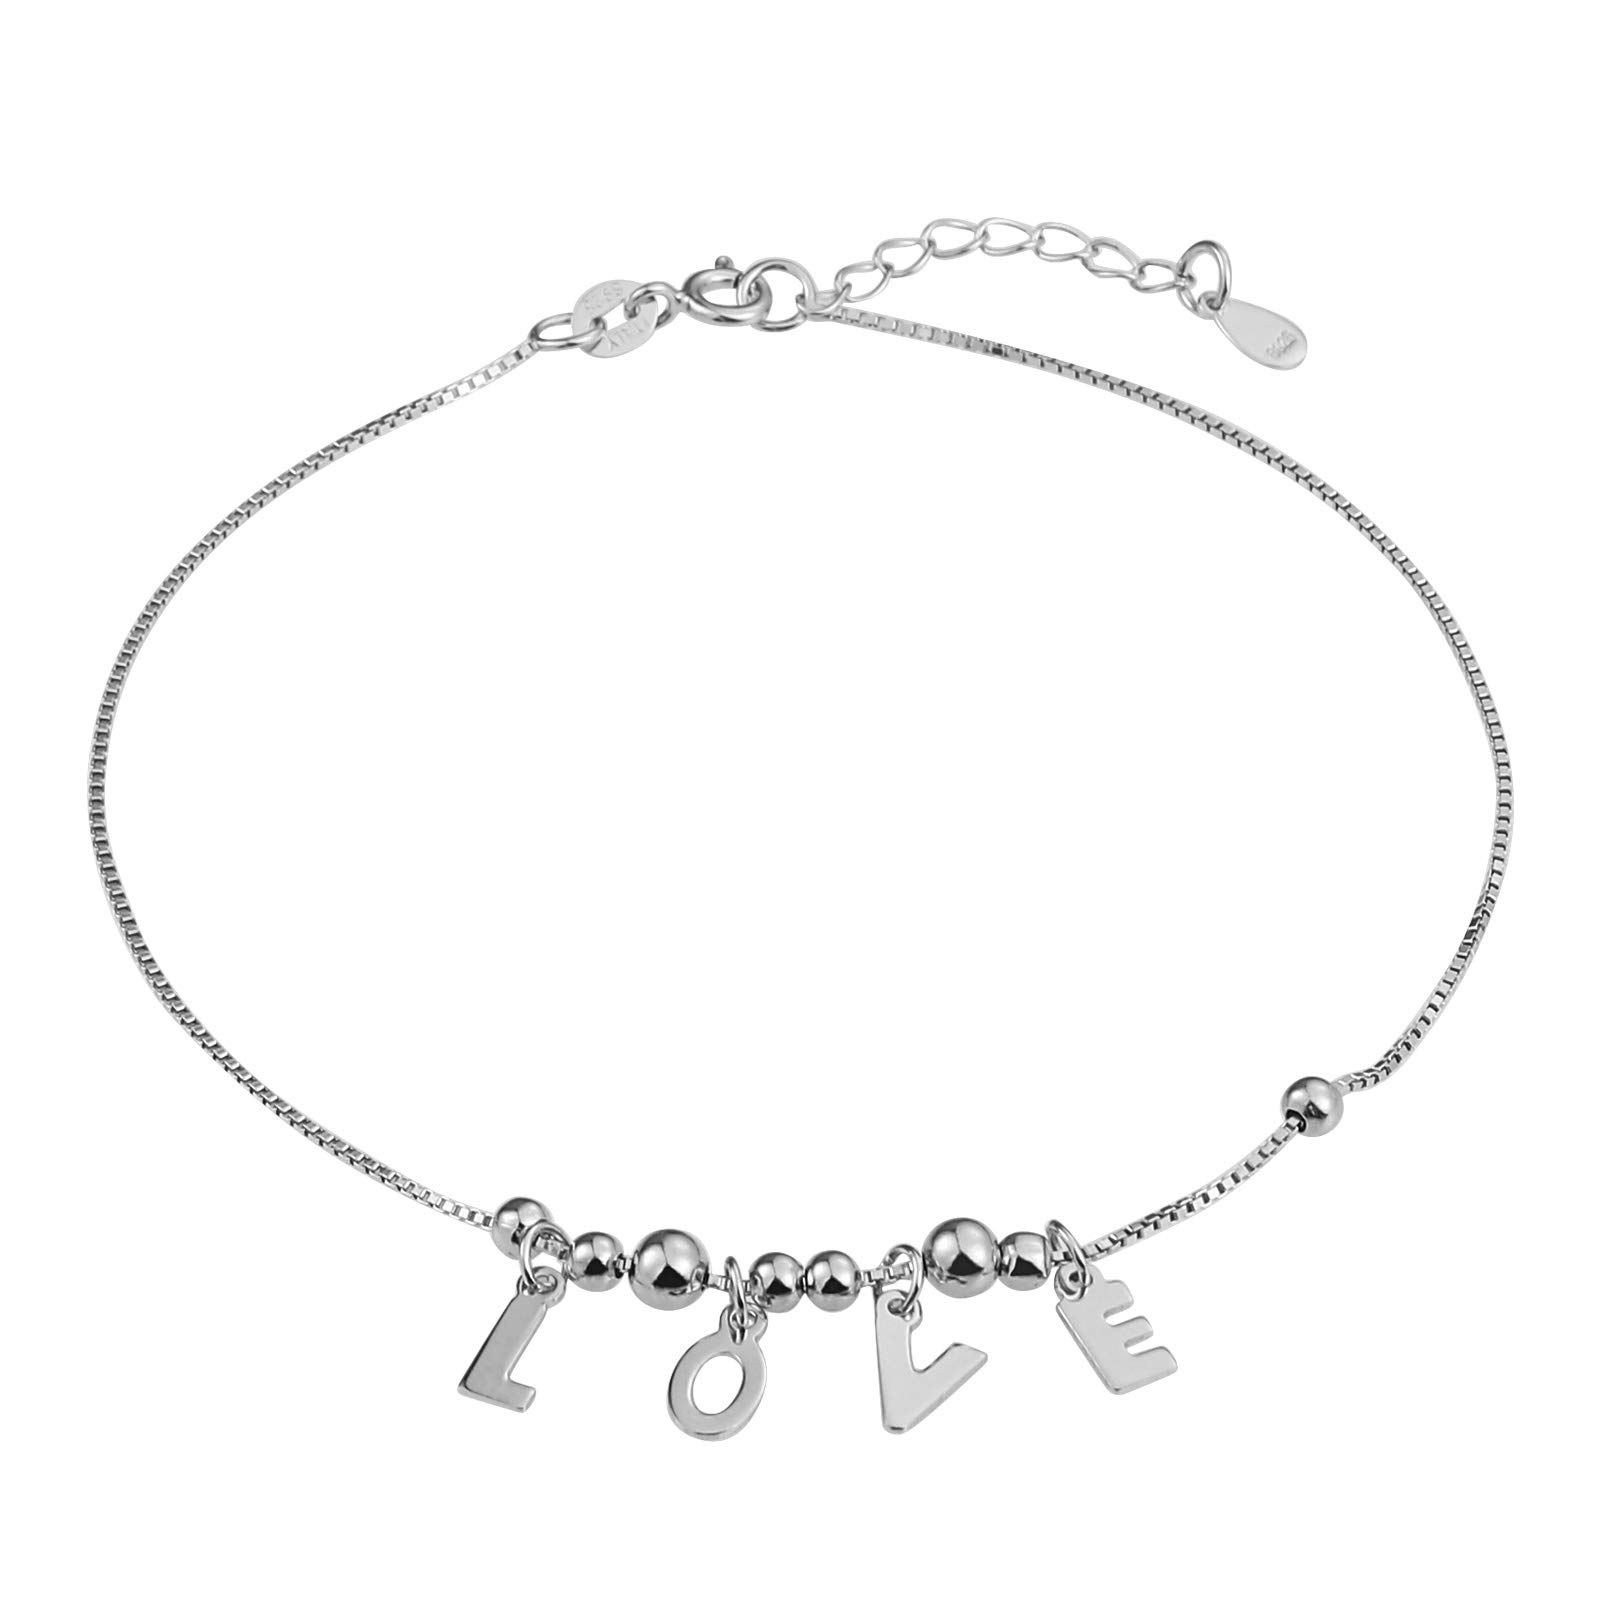 Beydodo Ankle Bracelet 925 Sterling Silver Ankle Bracelet 11 inches Engraving Love Round Beads